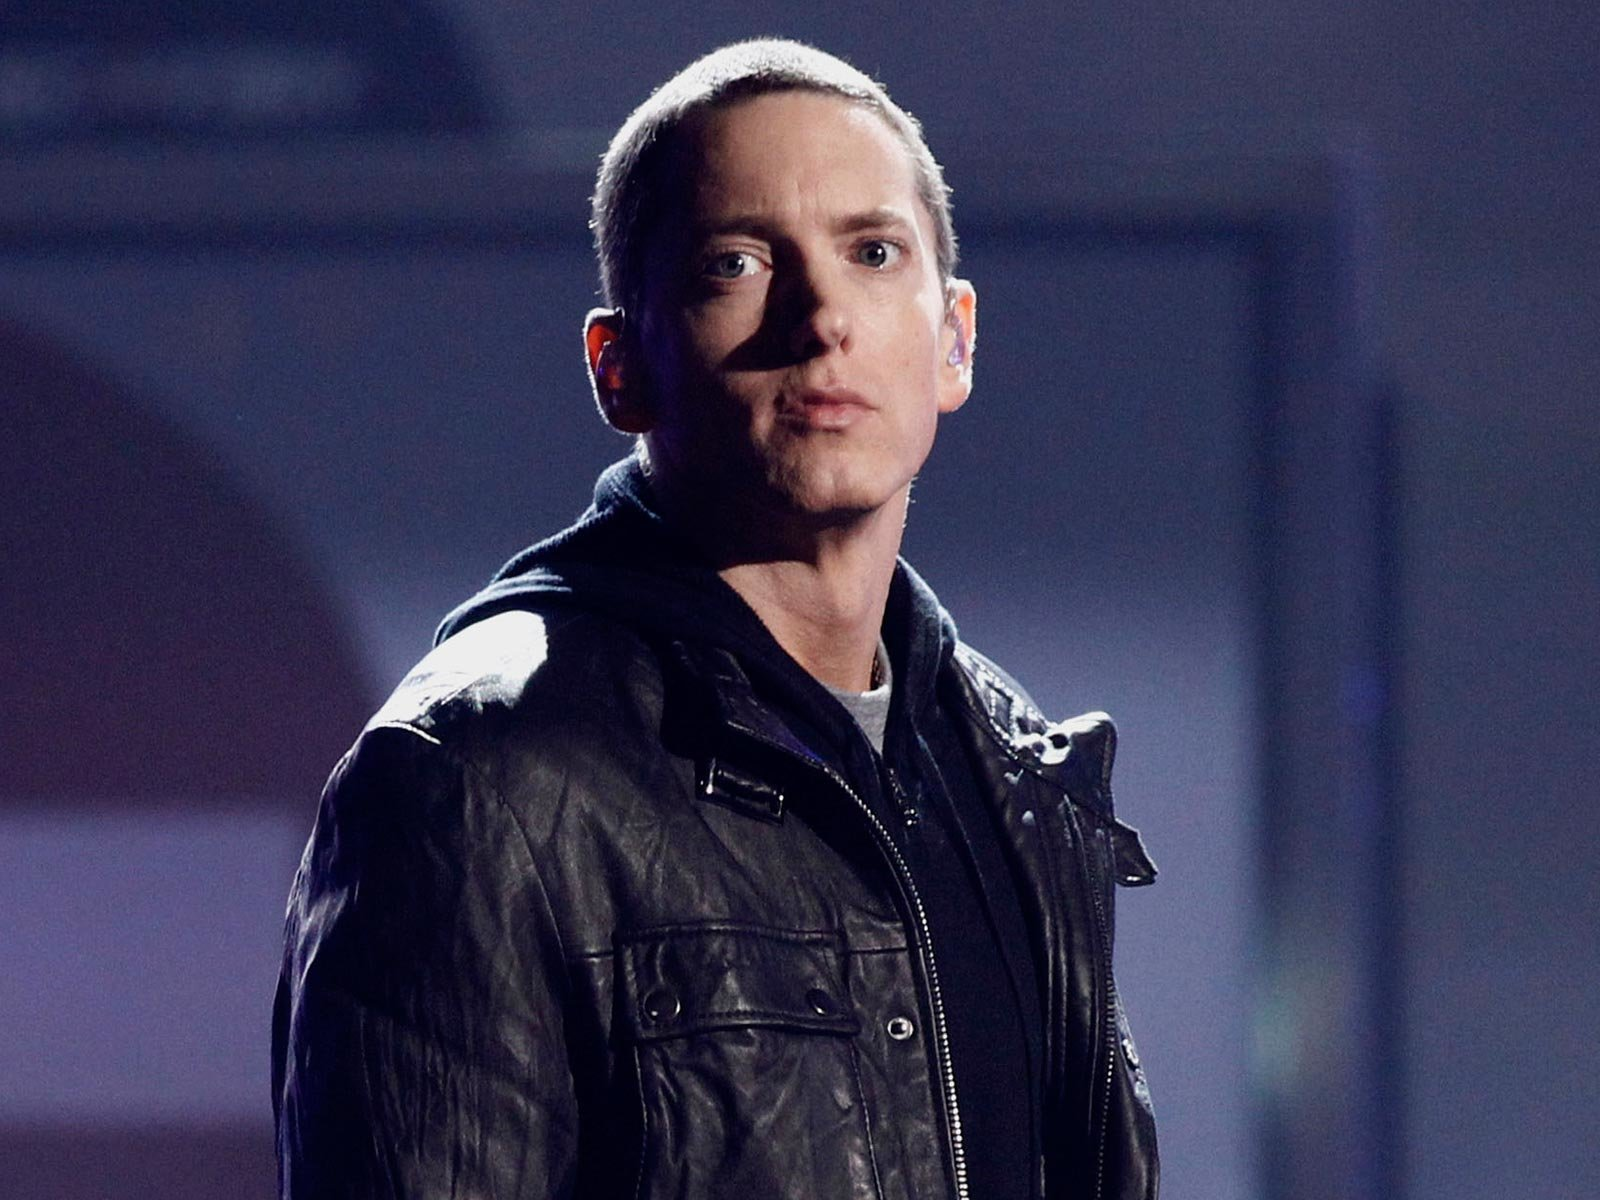 Free Eminem High Quality Wallpaper ID452157 For Hd 1600x1200 Computer